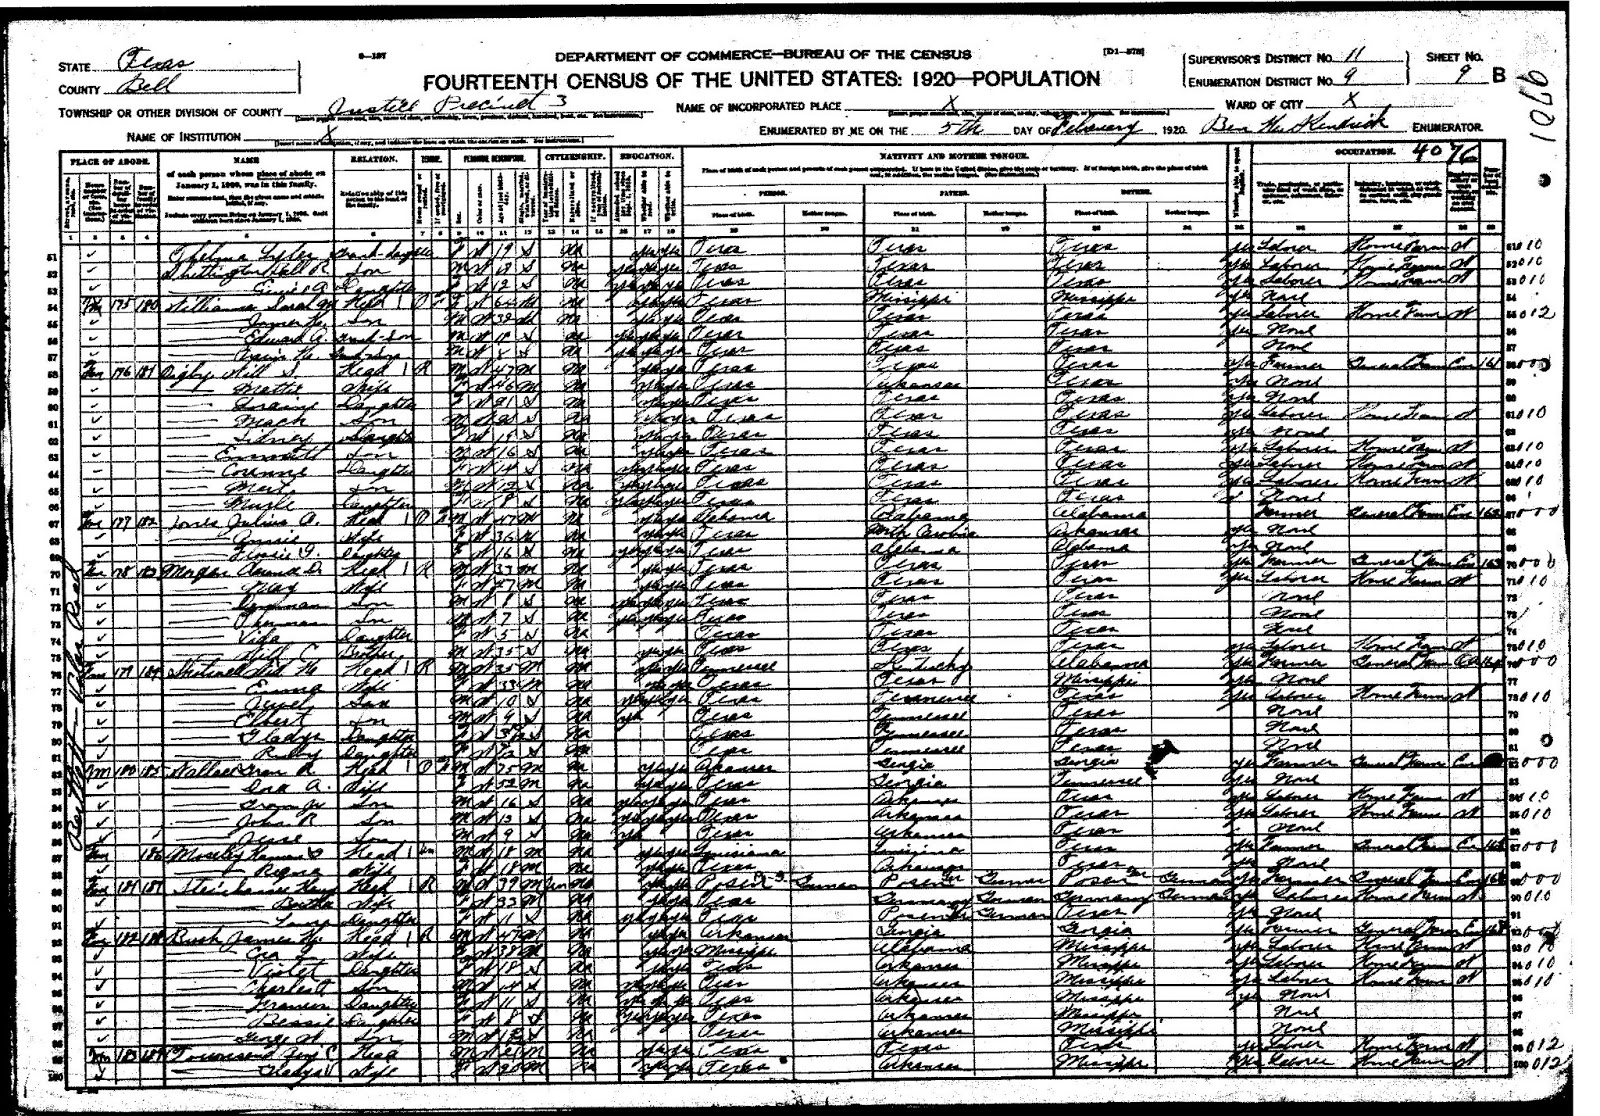 The family history of billy blair william seaborn digby basic 2 5 1920 bell county texas census top portion of page source ancestry grandison royston wallace family is also on this page xflitez Choice Image